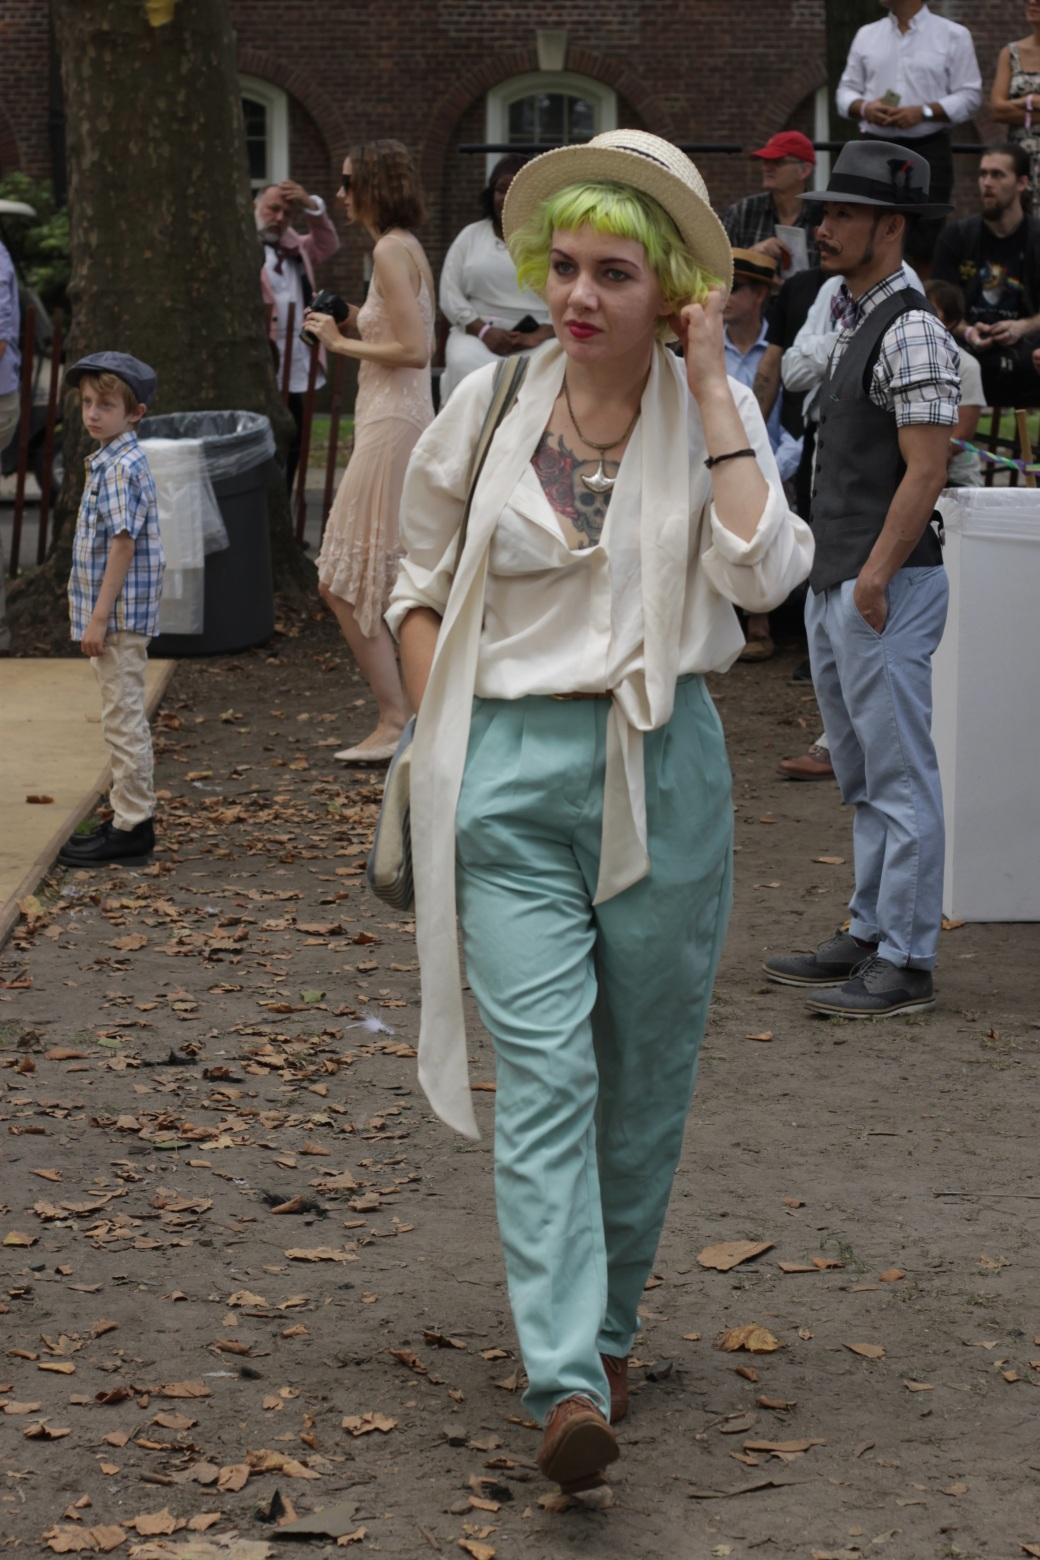 new york city governors island jazz age lawn party august 17 2014 19